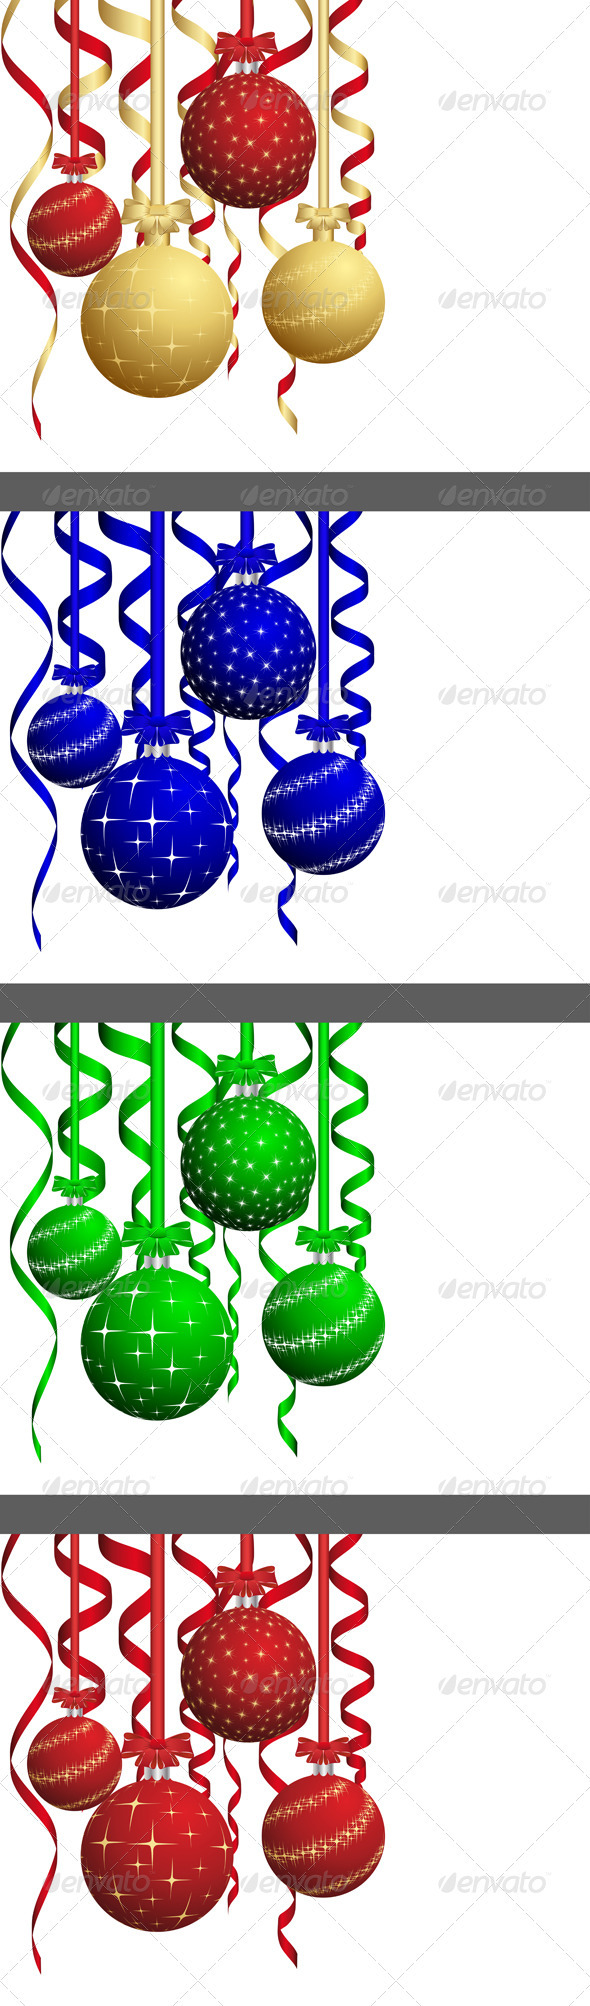 GraphicRiver Christmas Card Set 3446714